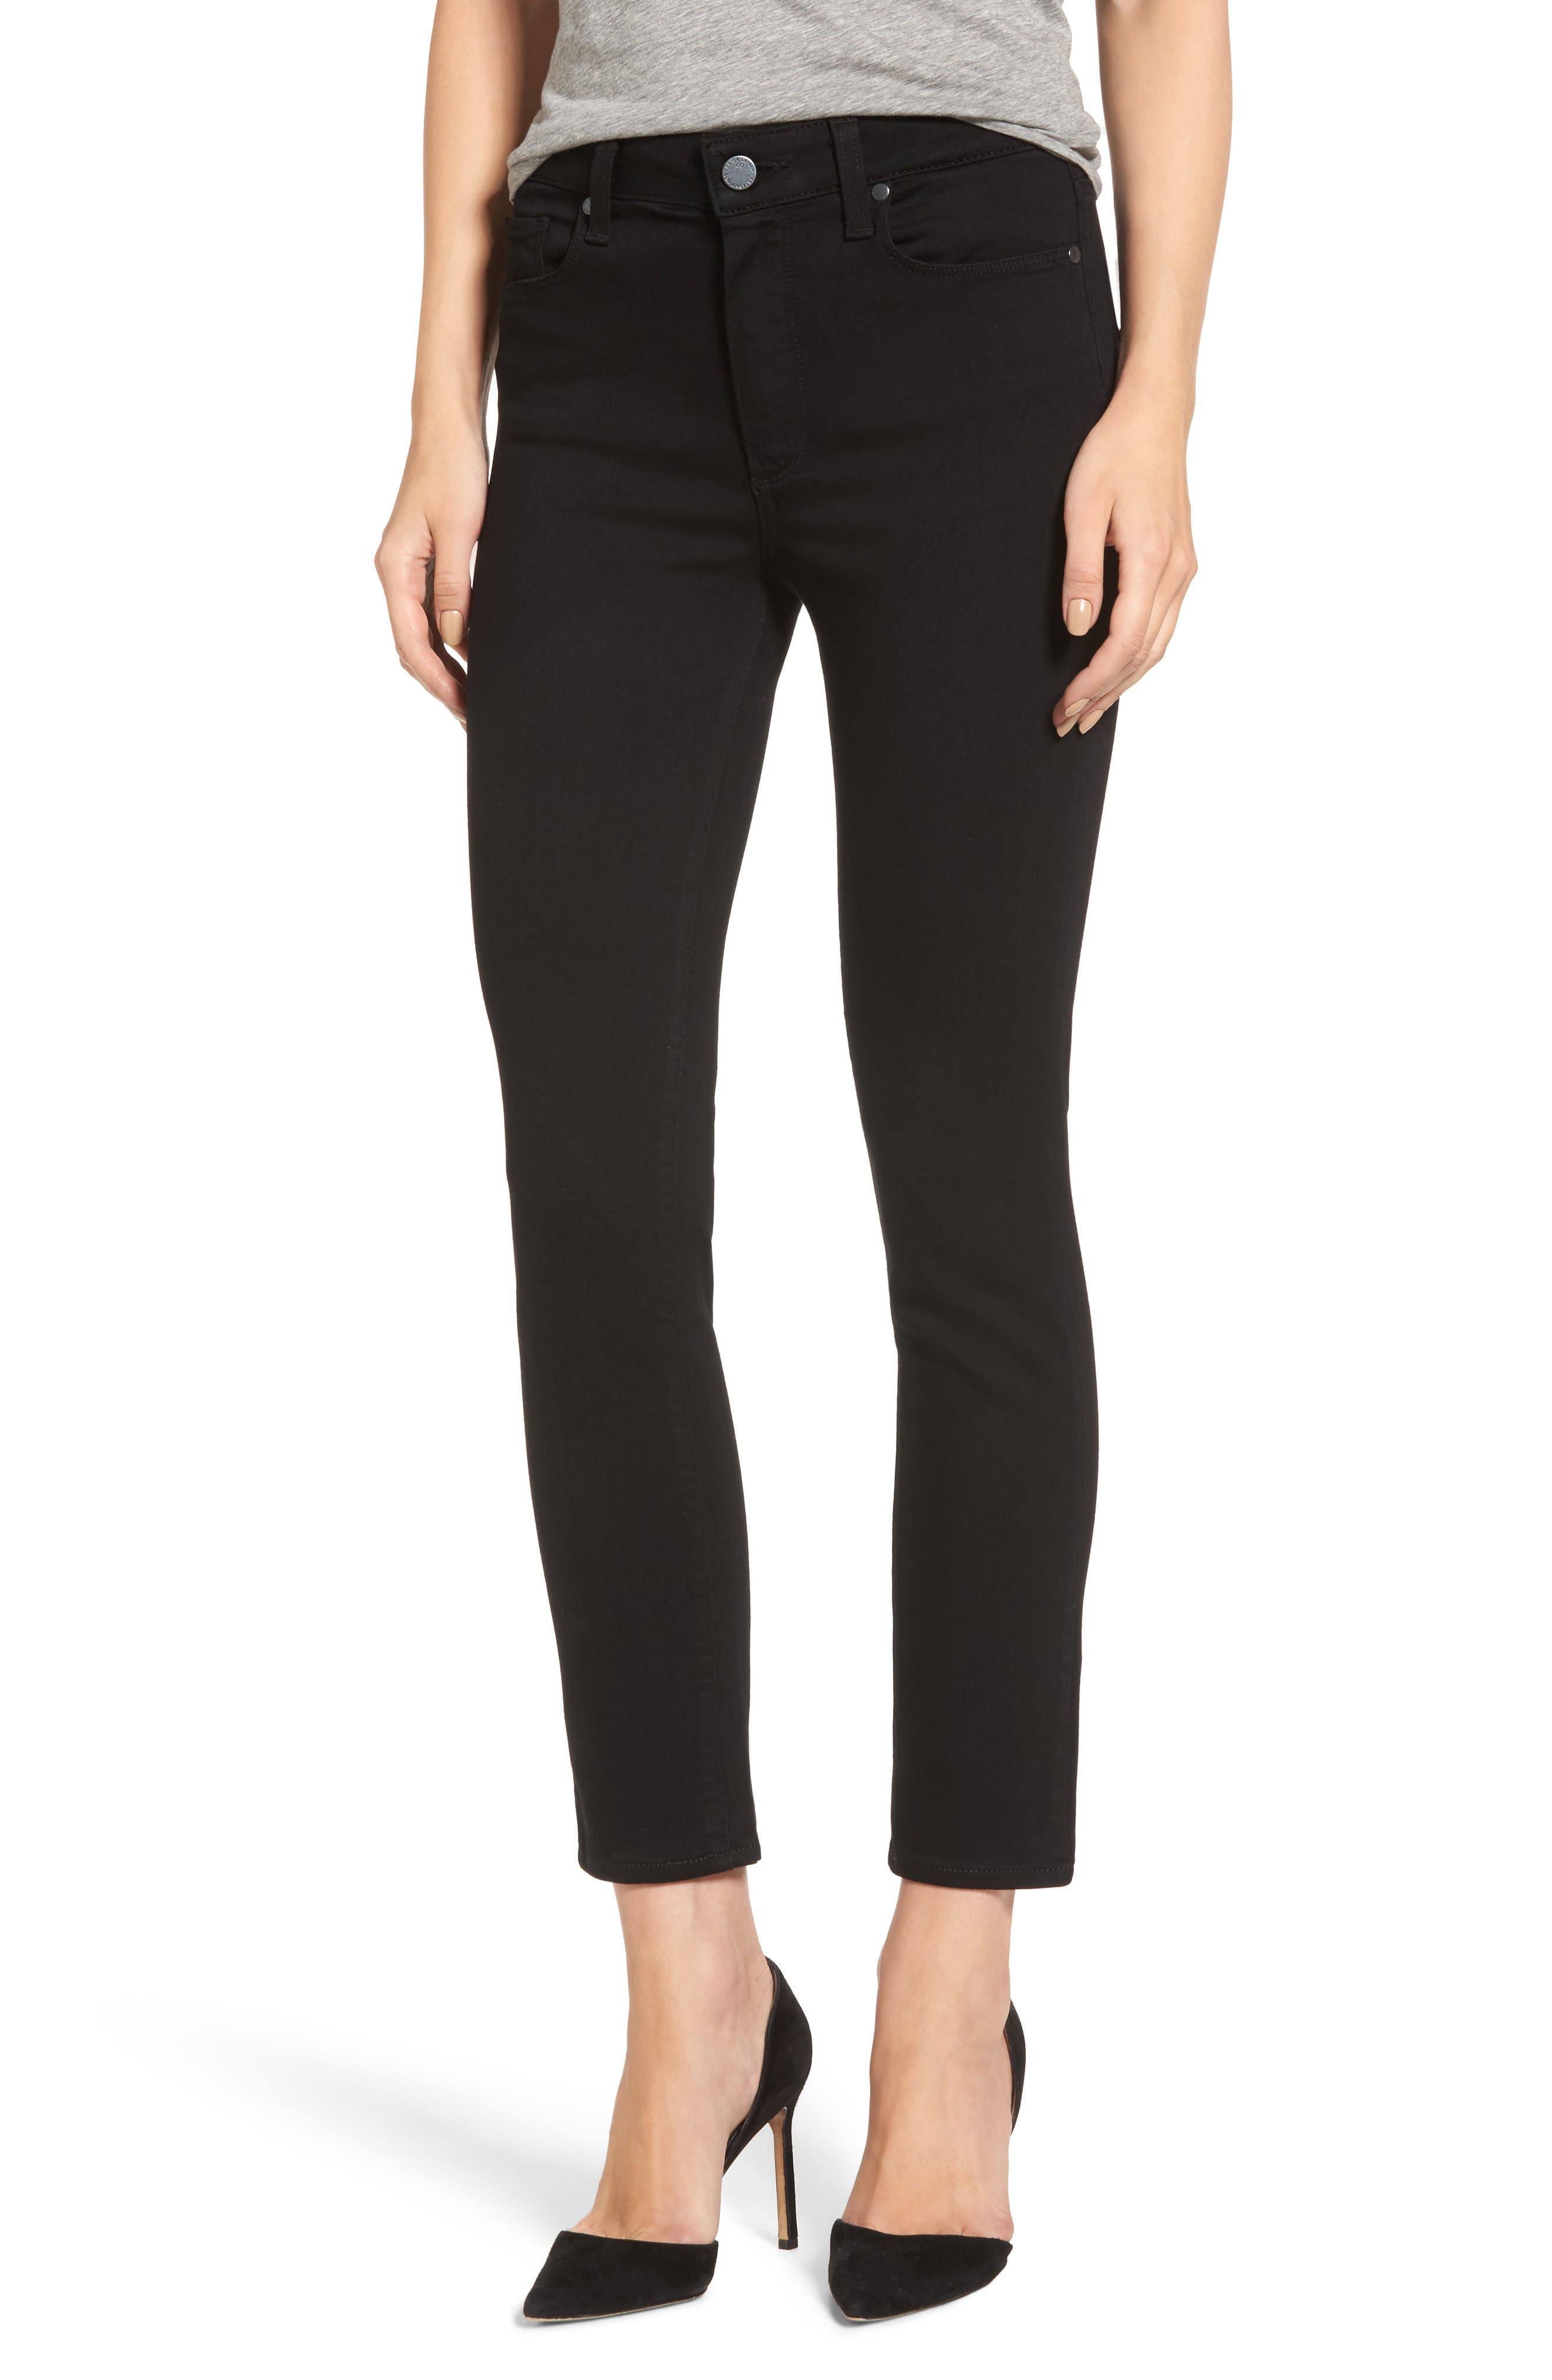 Hoxton Transcend High Waist Crop Skinny Jeans,                             Main thumbnail 1, color,                             BLACK SHADOW